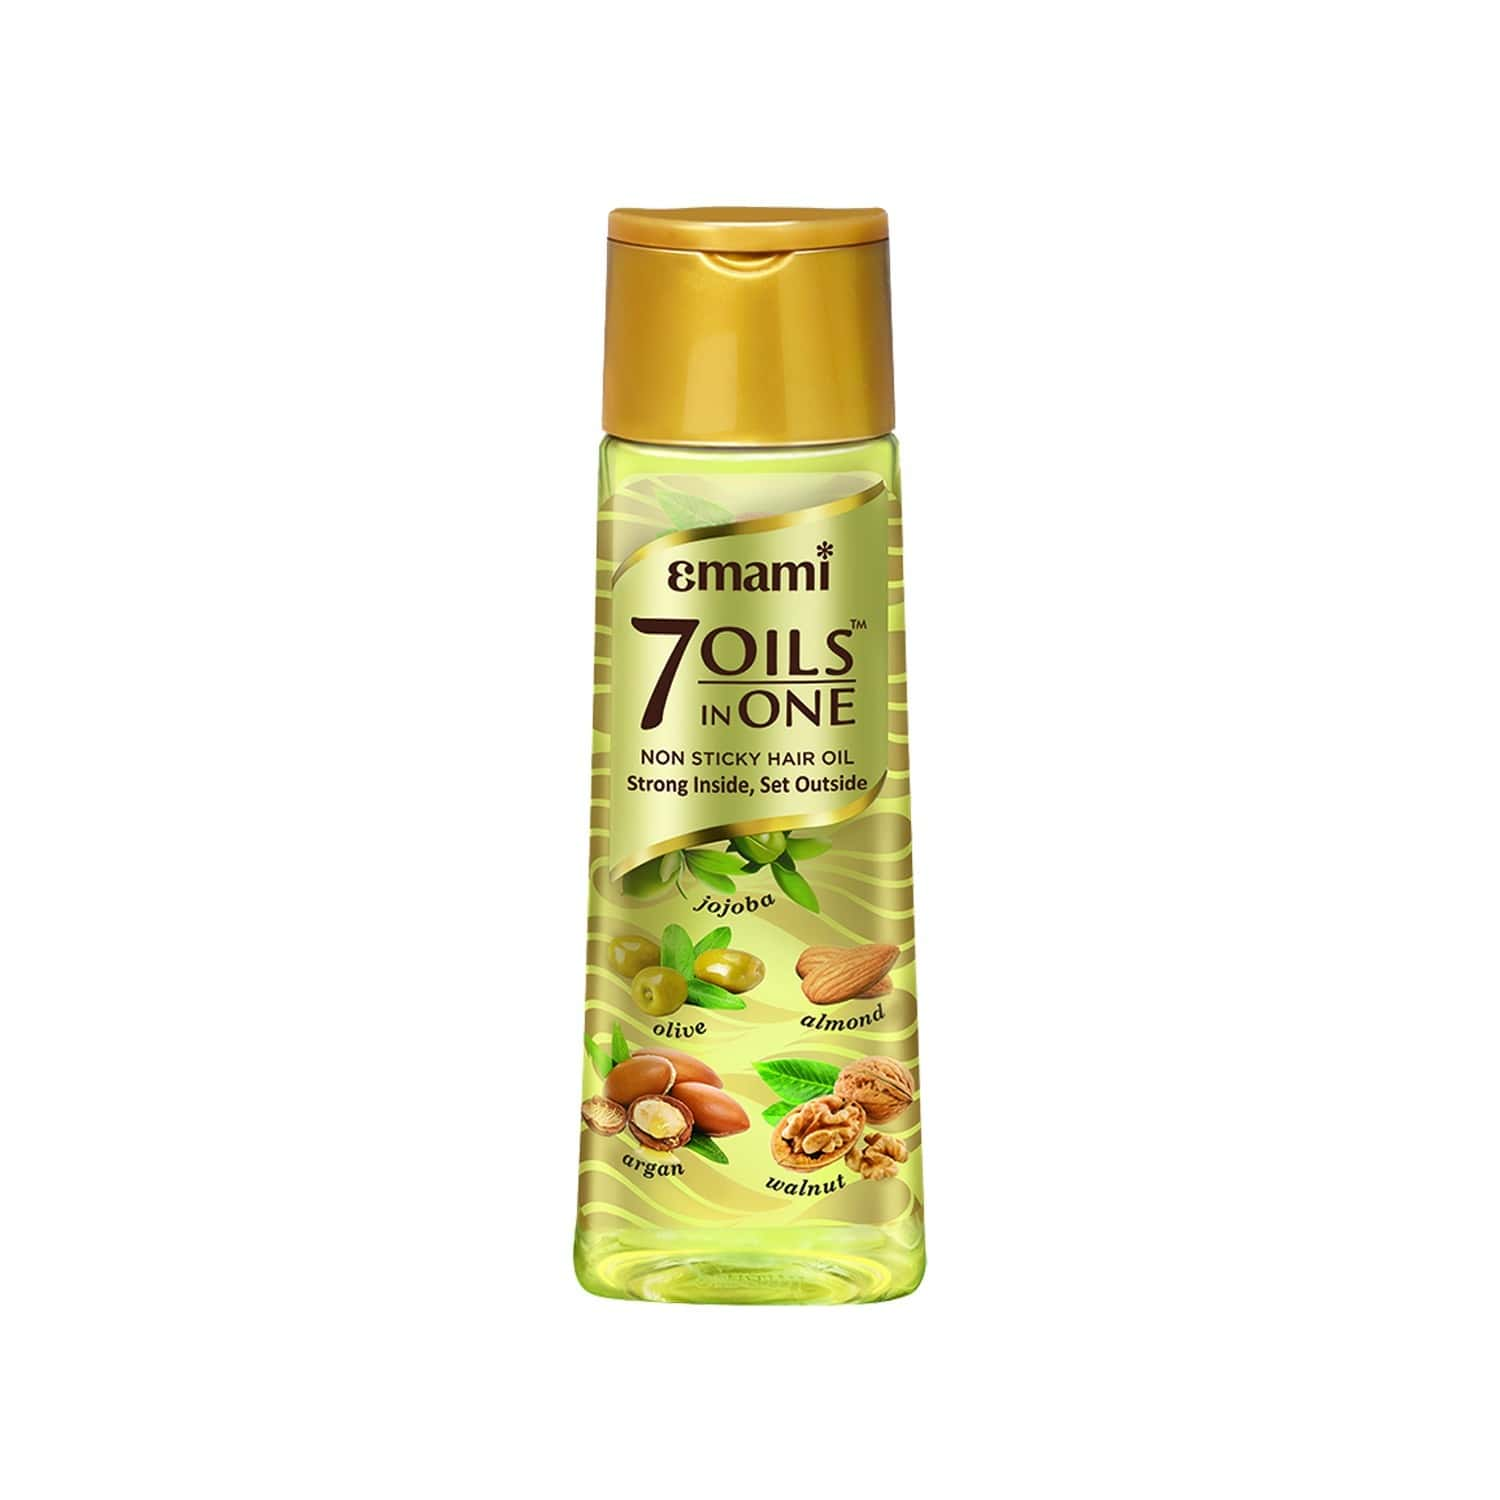 Emami 7 Oils In One Damage Control Hair Oil Bottle Of 100 Ml